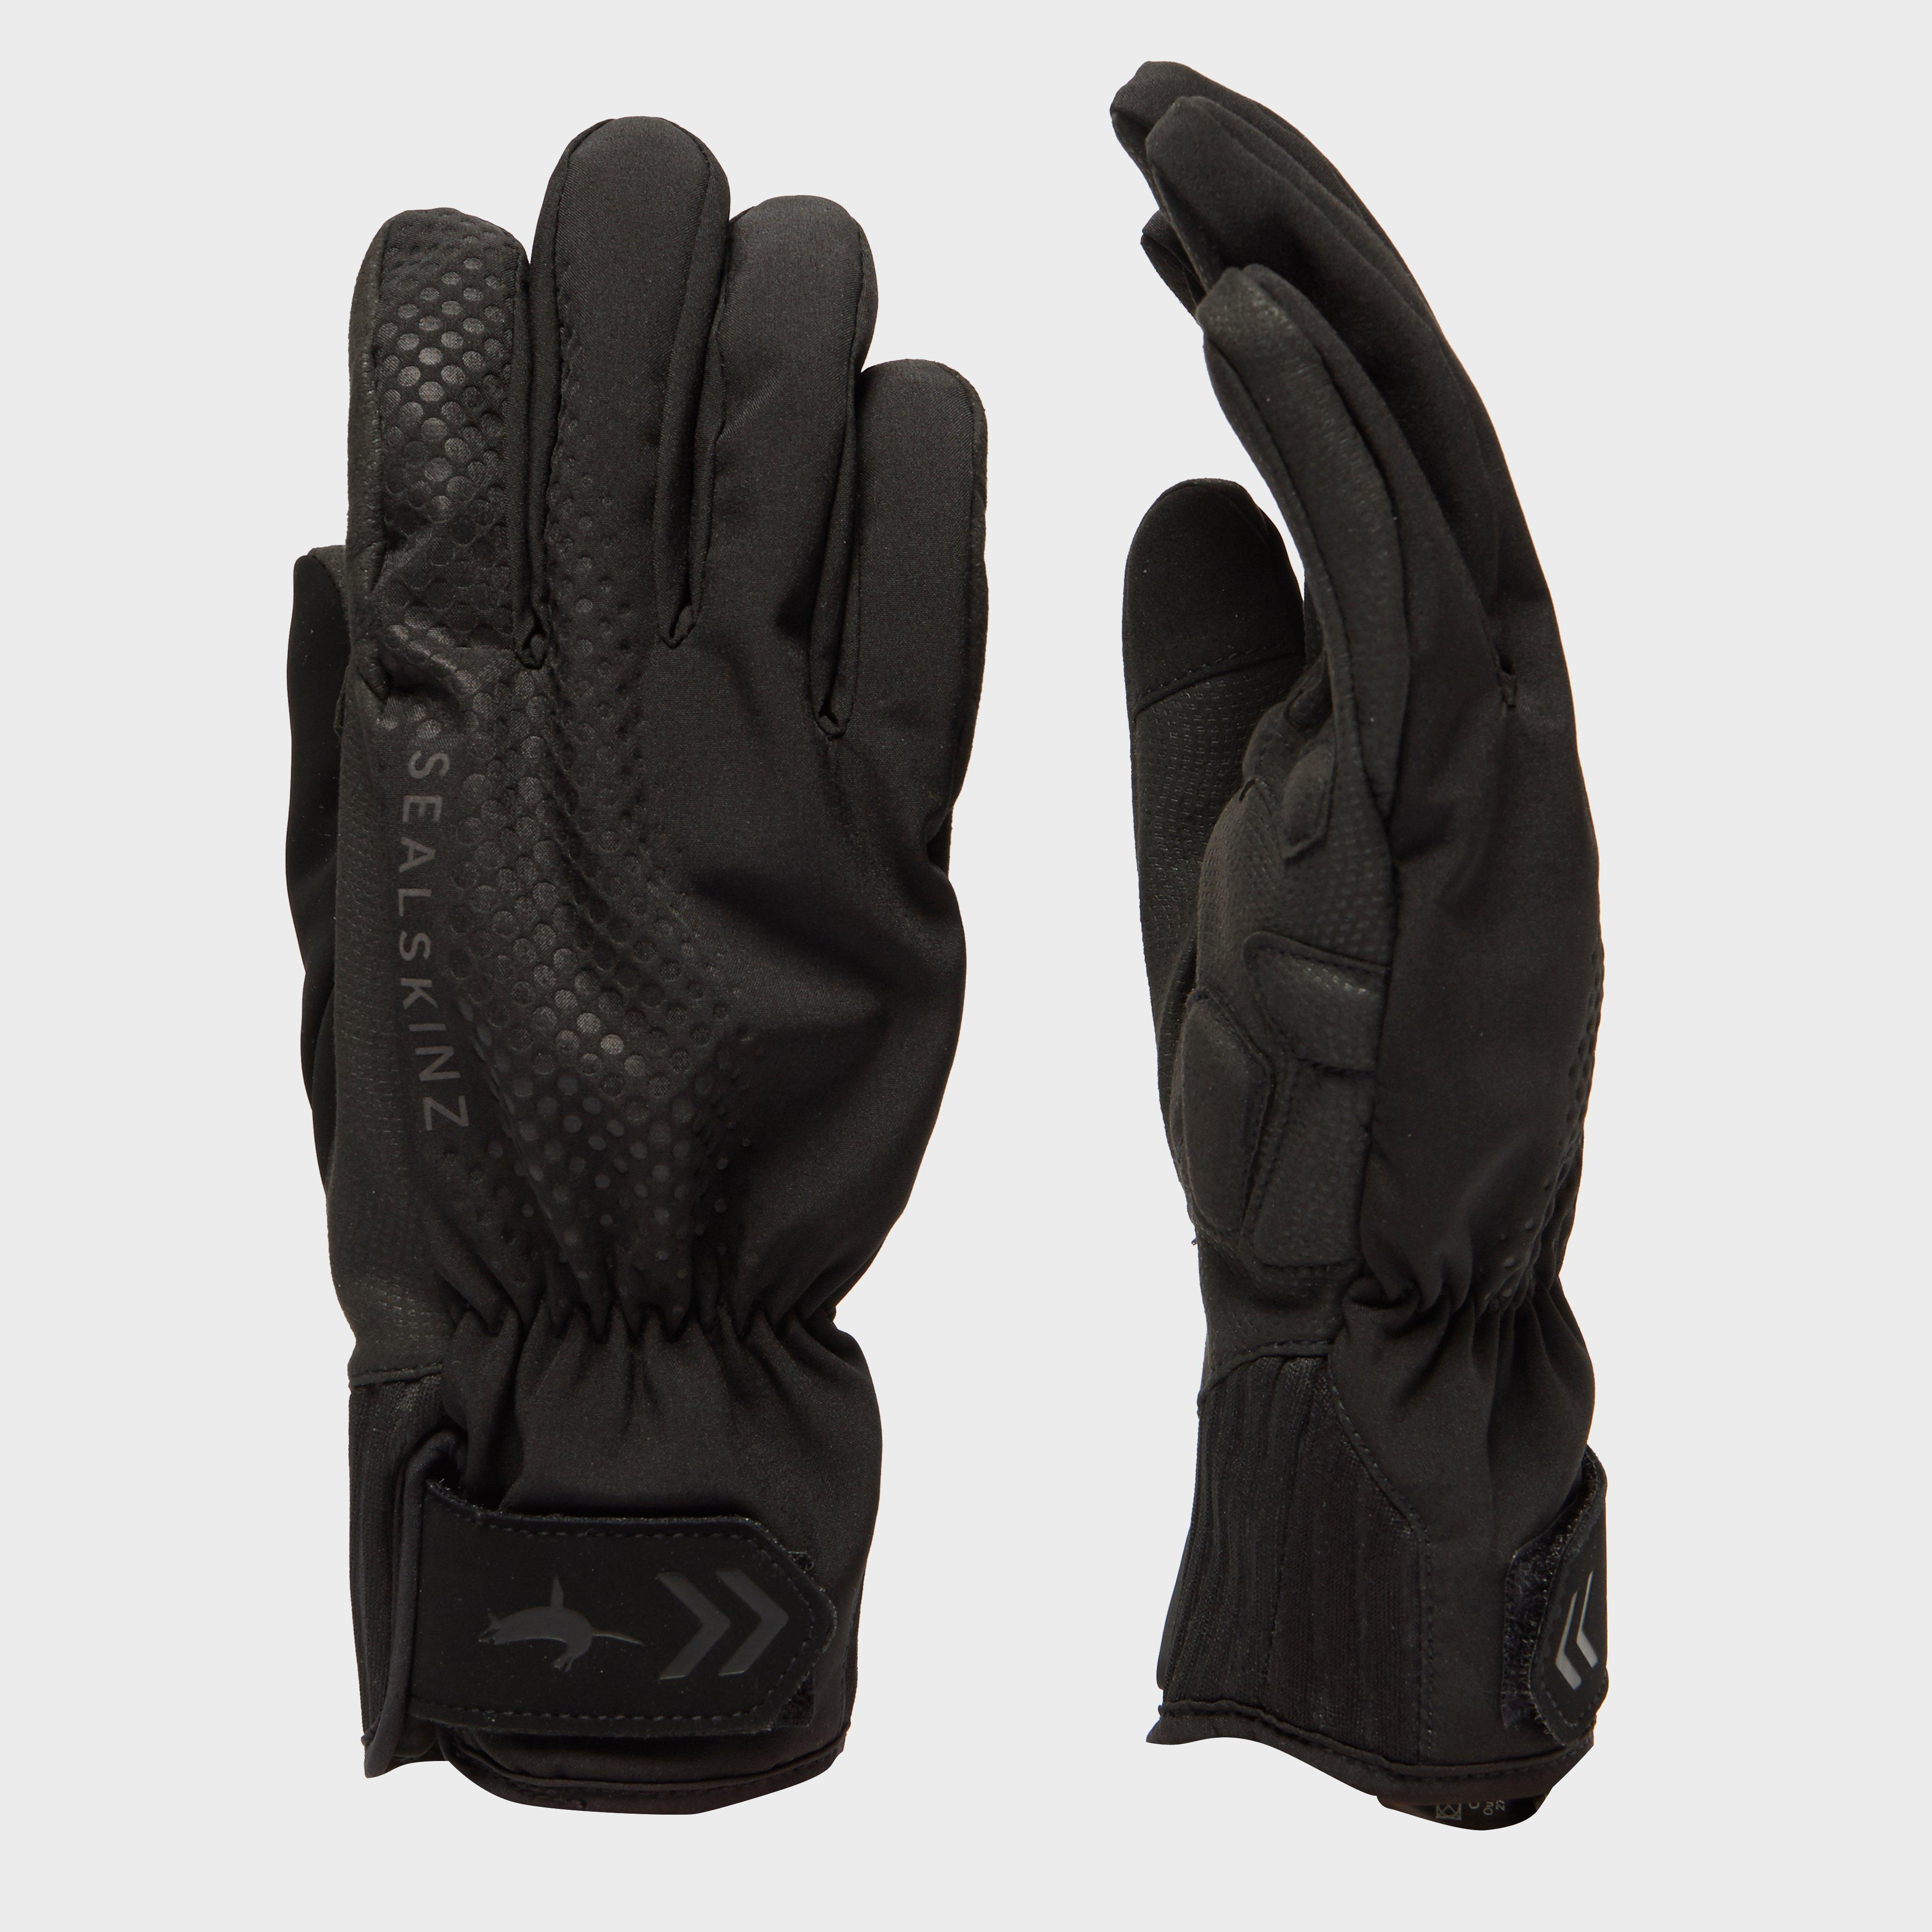 Sealskinz All Weather Cycle XP Gloves - Black, Black